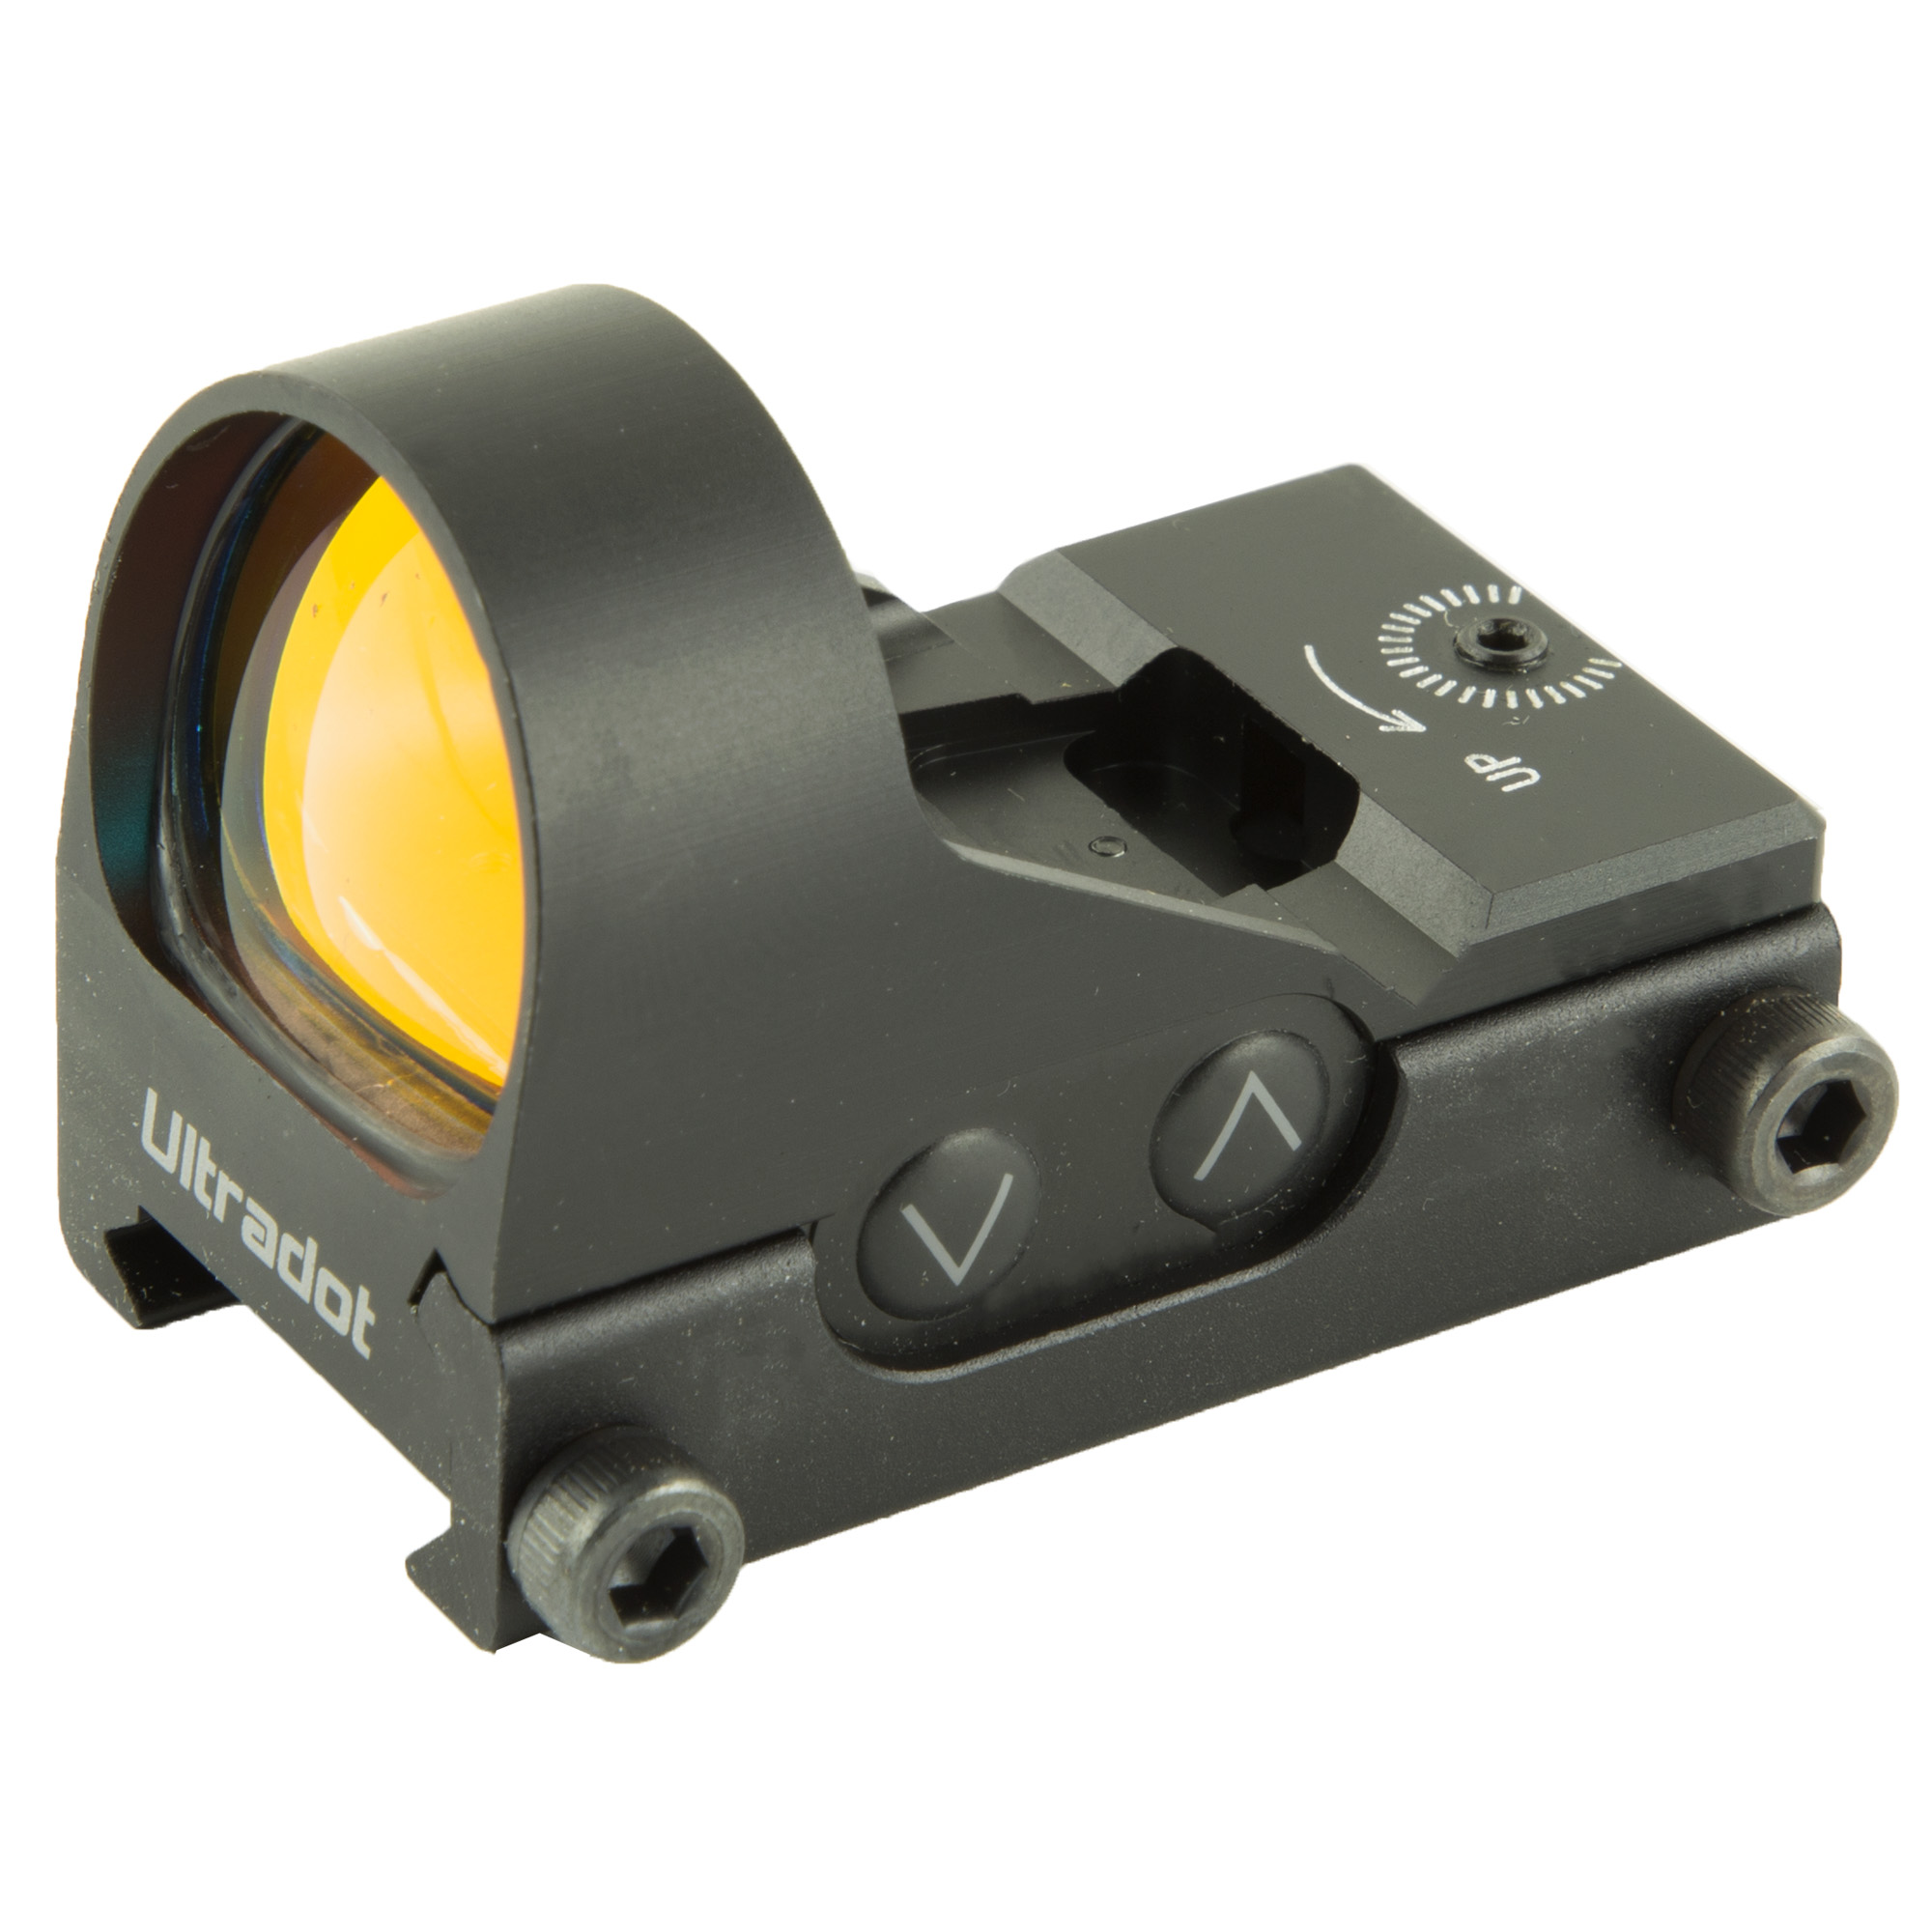 """The Ultradot L/T has always been a high performance compact sight"""" but Ultradot felt it could be even better. So they've redesigned it with features you've asked for and the results are outstanding. Auto-off"""" push button brightness adjustment"""" brightness memory"""" precise 4 MOA dot size"""" increased weather resistance"""" detents and indicators for windage and elevation adjustments (eliminate the need for dial disk) and a built in rail clamp system. Don't let its small size fool you...this is one tough sight and is back by Ultradot's Limited Lifetime Warranty."""